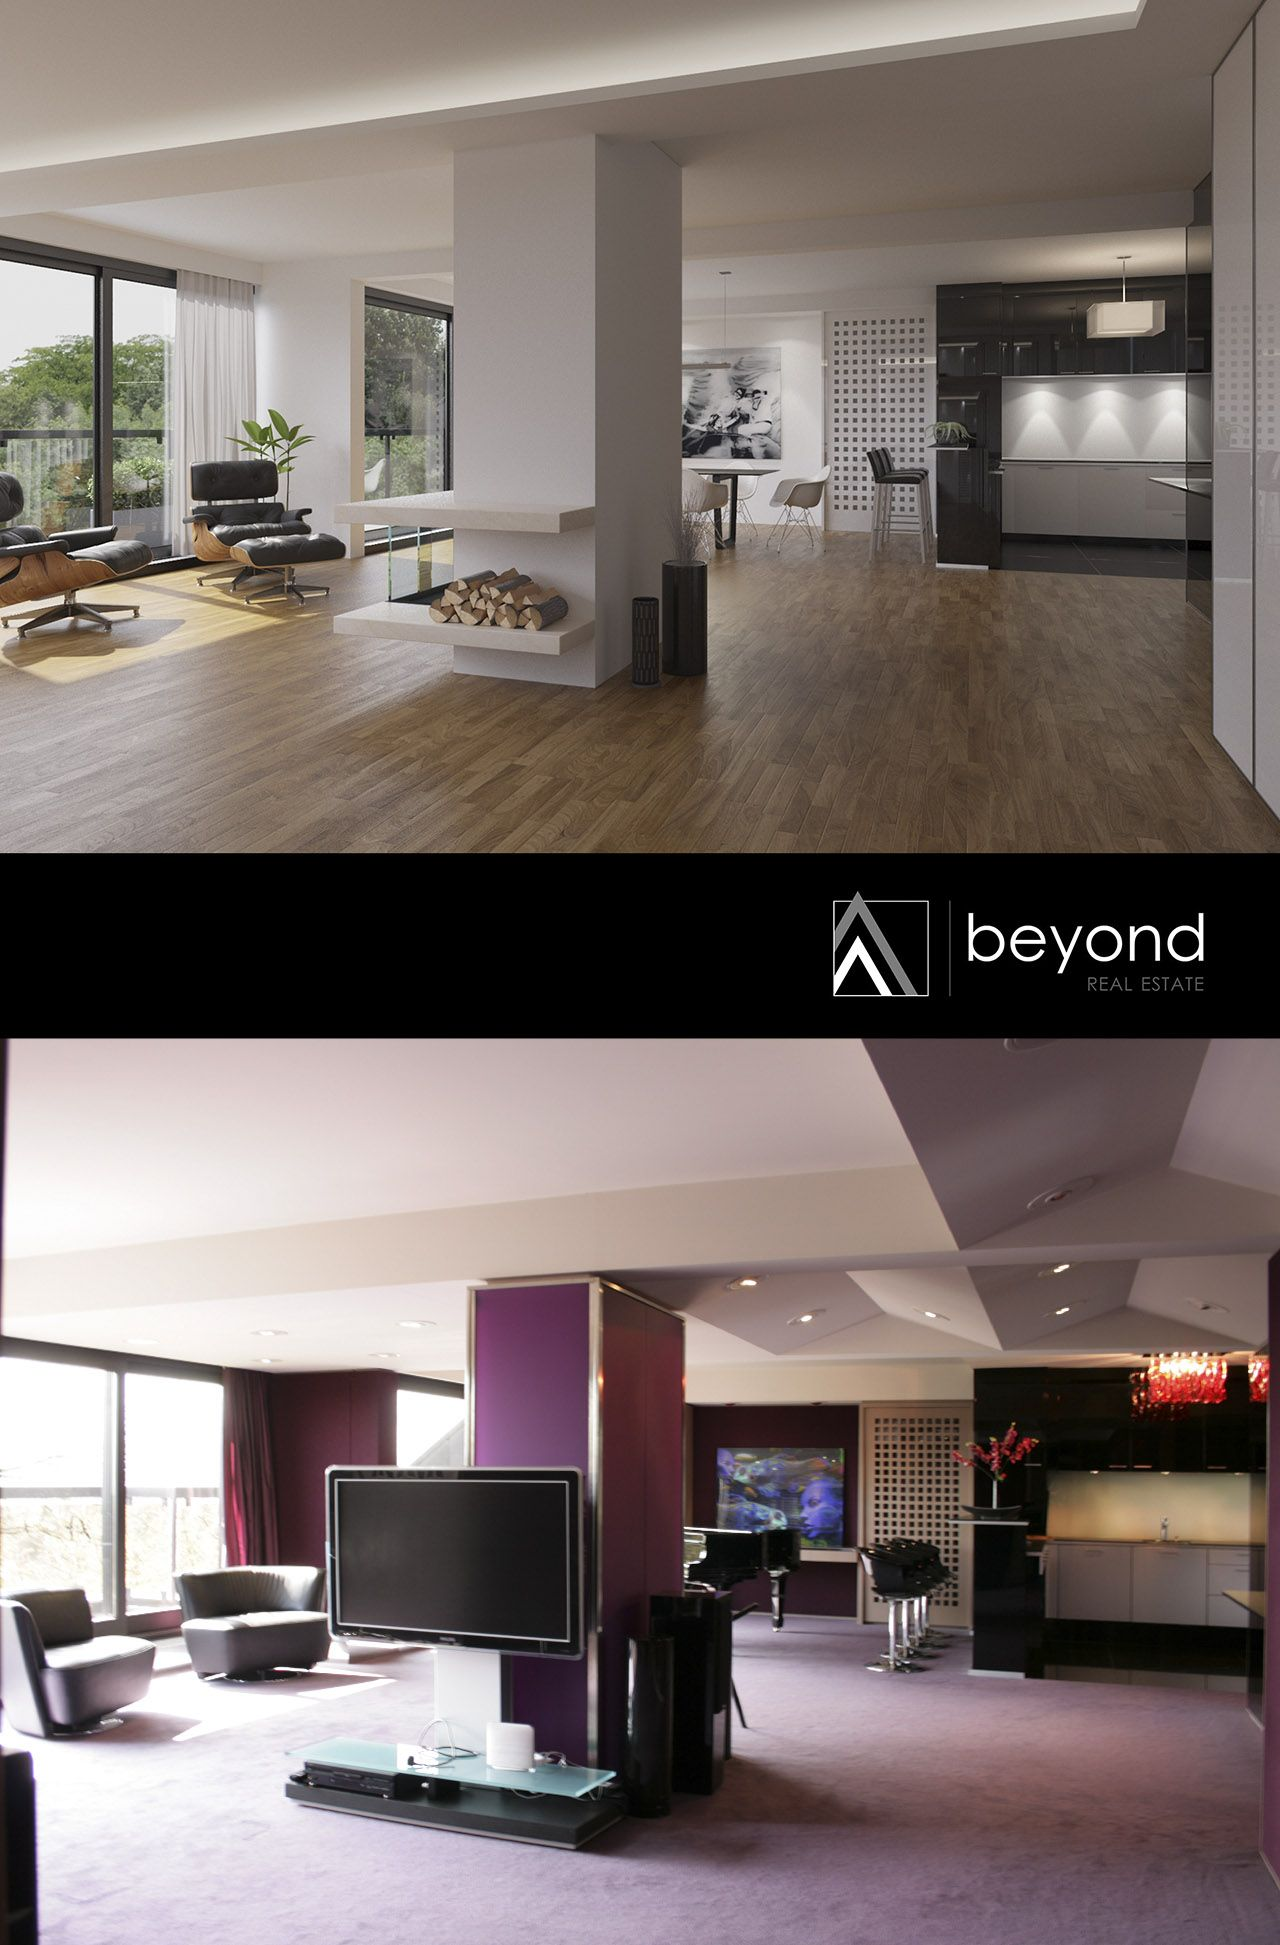 Superb  Penthouse in D sseldorf for Sale by beyond REAL ESTATE Living deluxe in DUS Pinterest Real estate